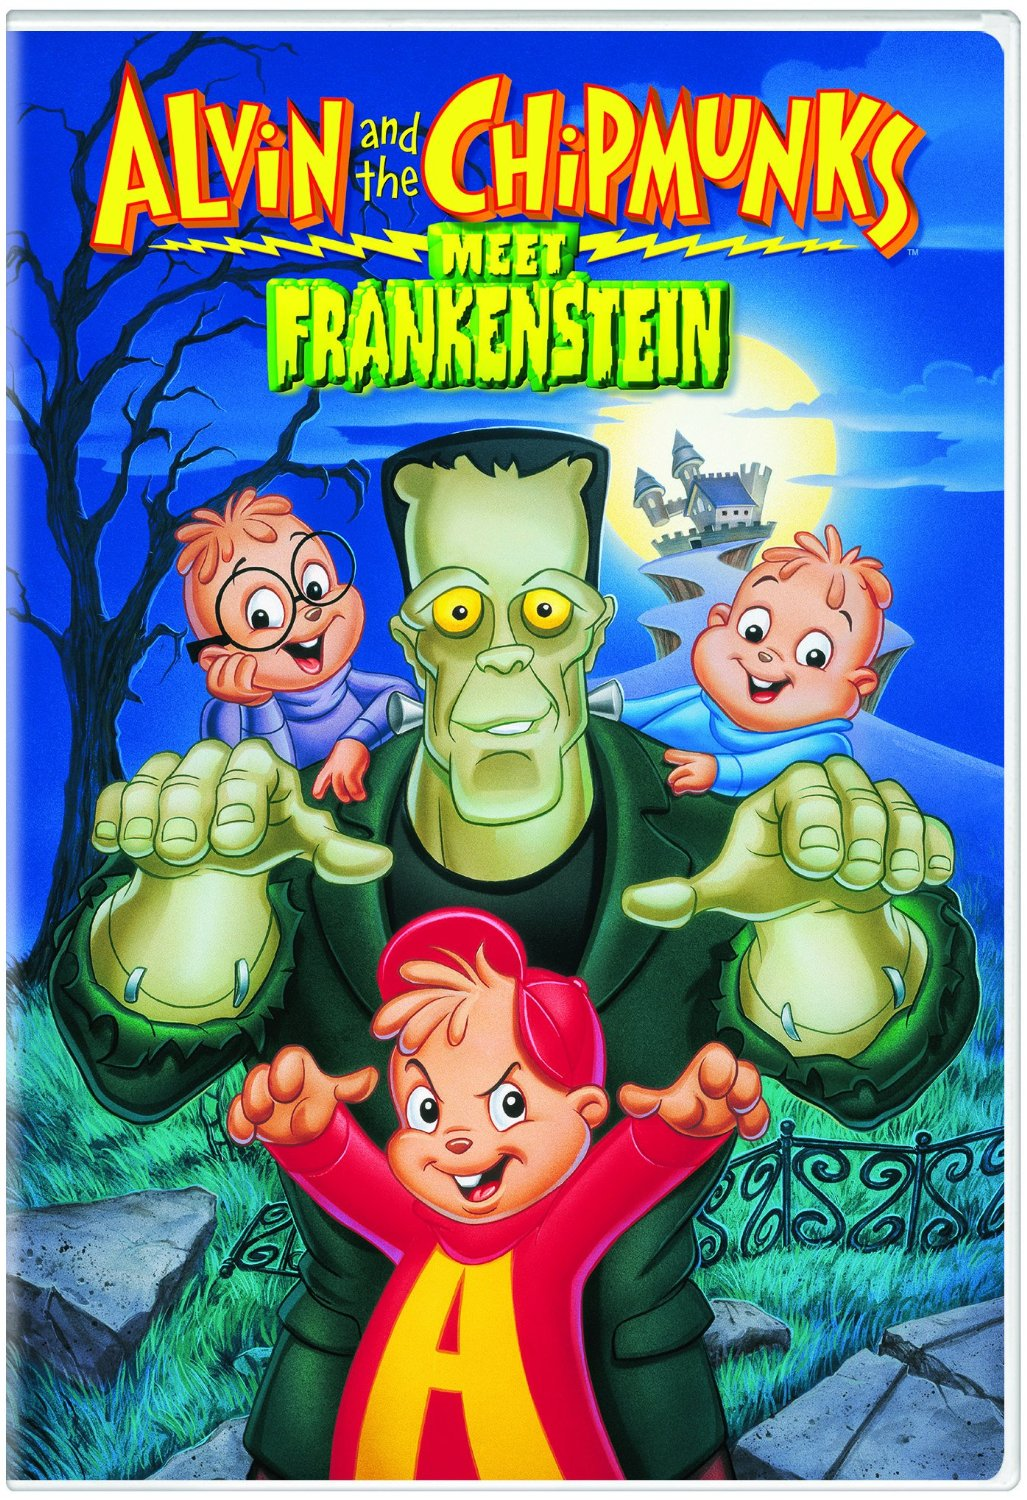 alvin and the chipmunks meet frankenstein (1999) | soundeffects wiki